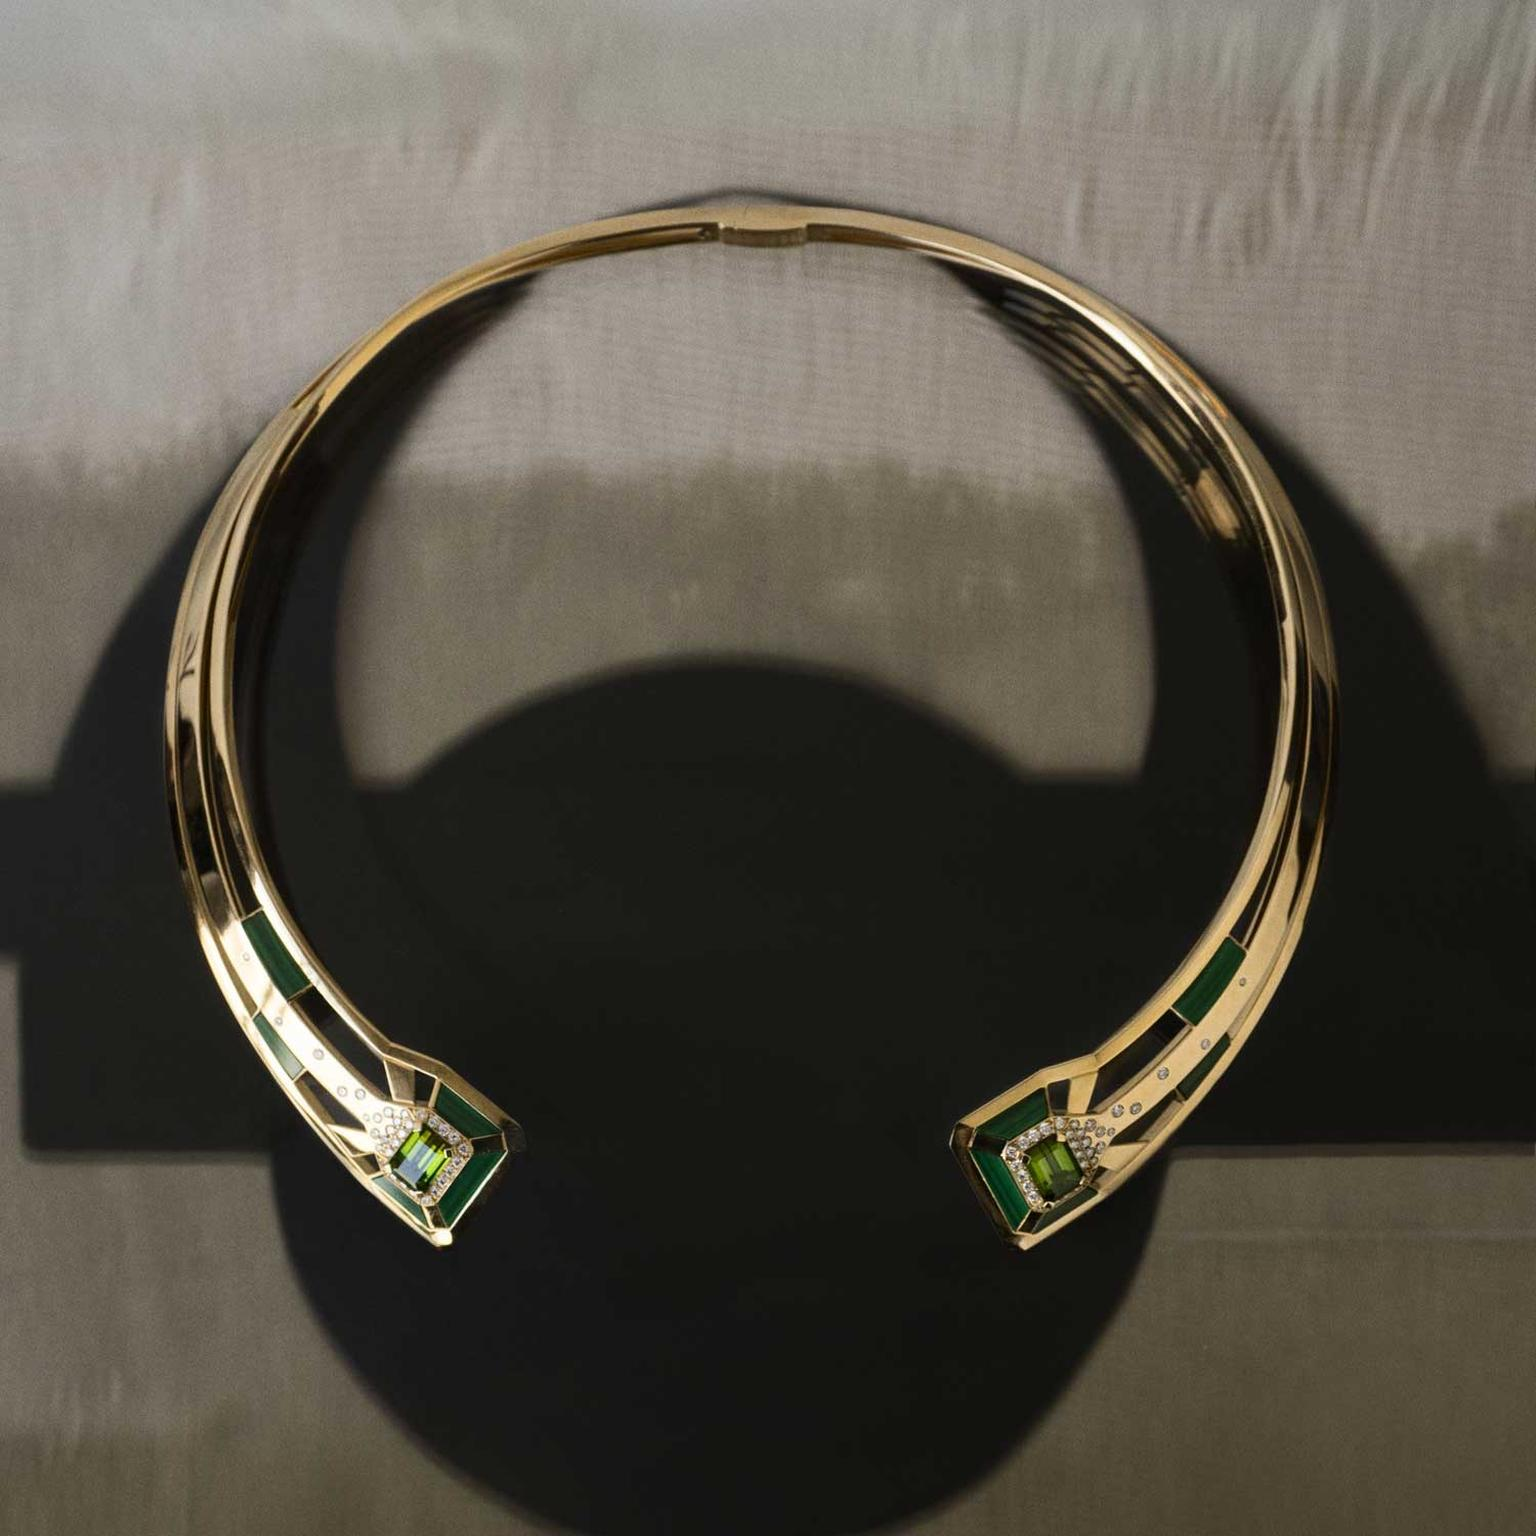 Chanel Gallery My Green tourmaline necklace